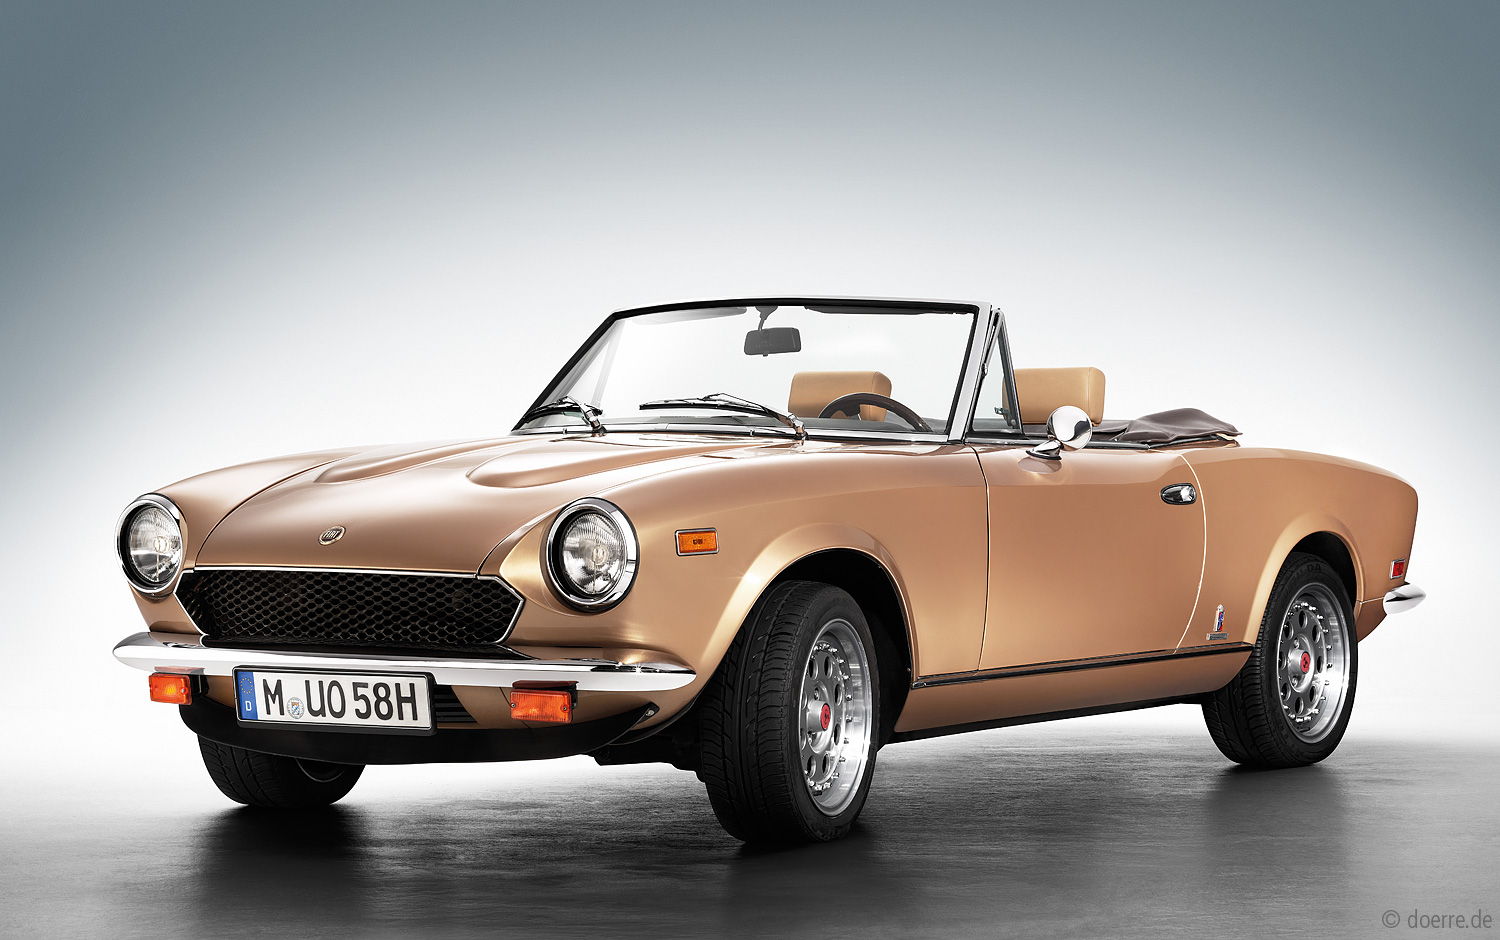 Cabriotrume 2015 Cars Doerre Fotodesign 1971 Fiat 124 Sport Spider Previous Image Erstzulassung 1980 2000 Injection Pininfarina 50th Golden Anniversary Edition